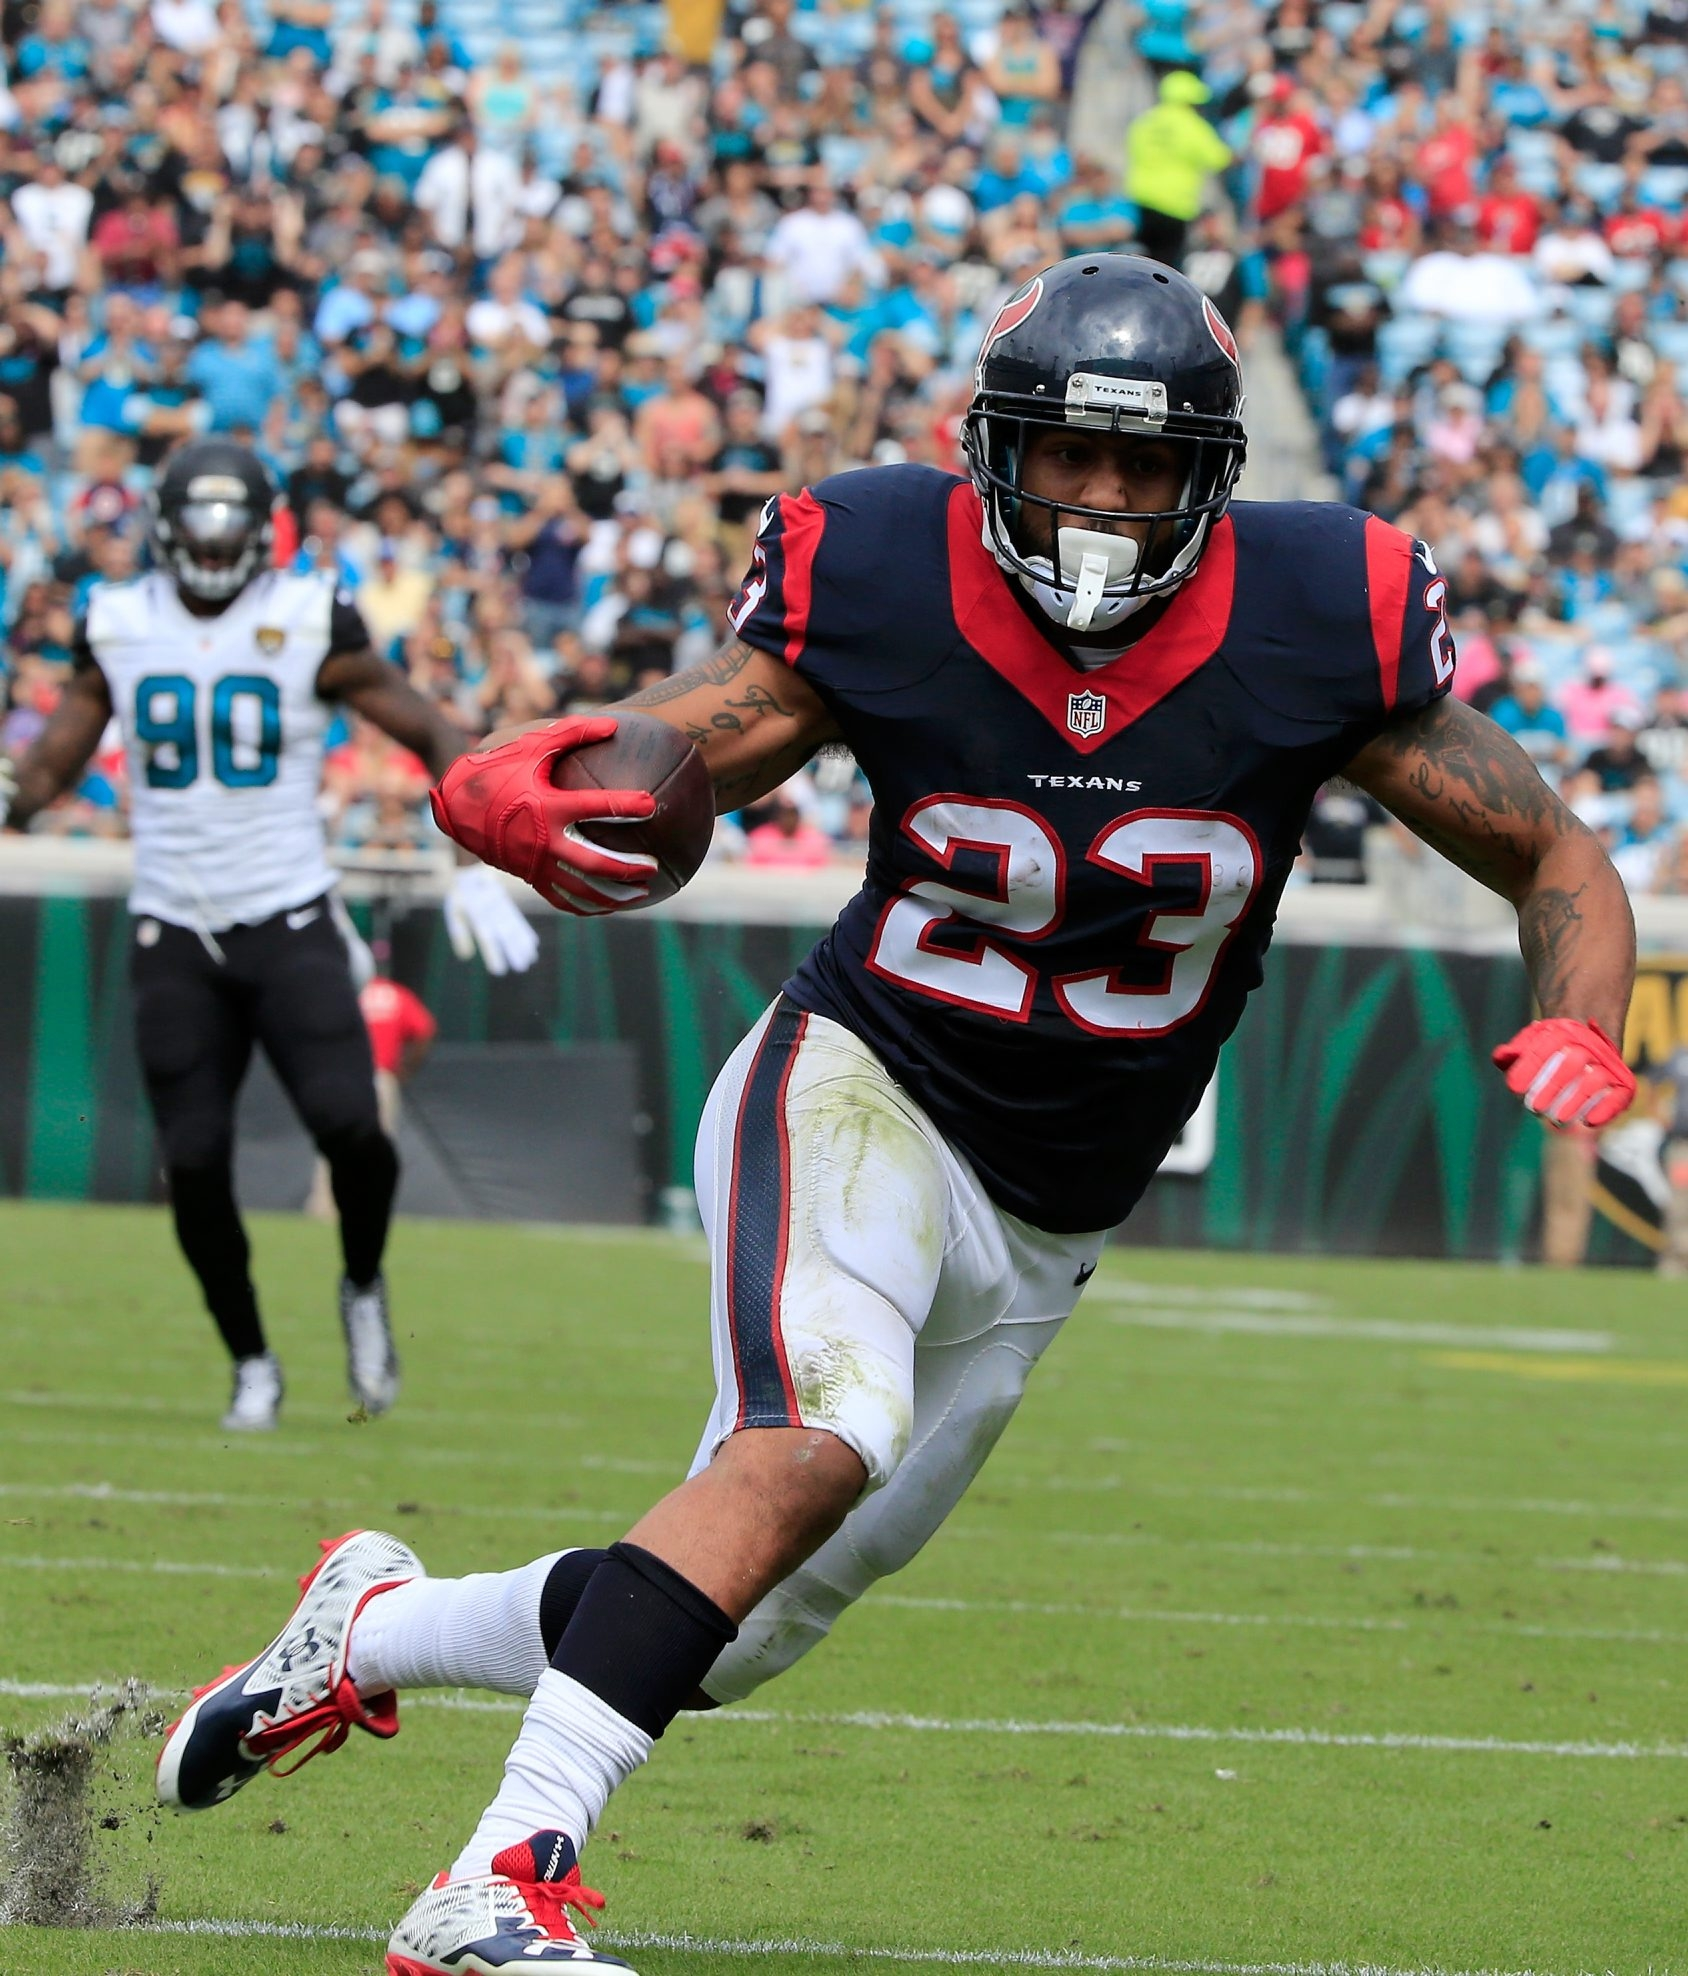 Arian Foster. a former member of the Houston Texans, might be able to help the Bills' depth at running back.